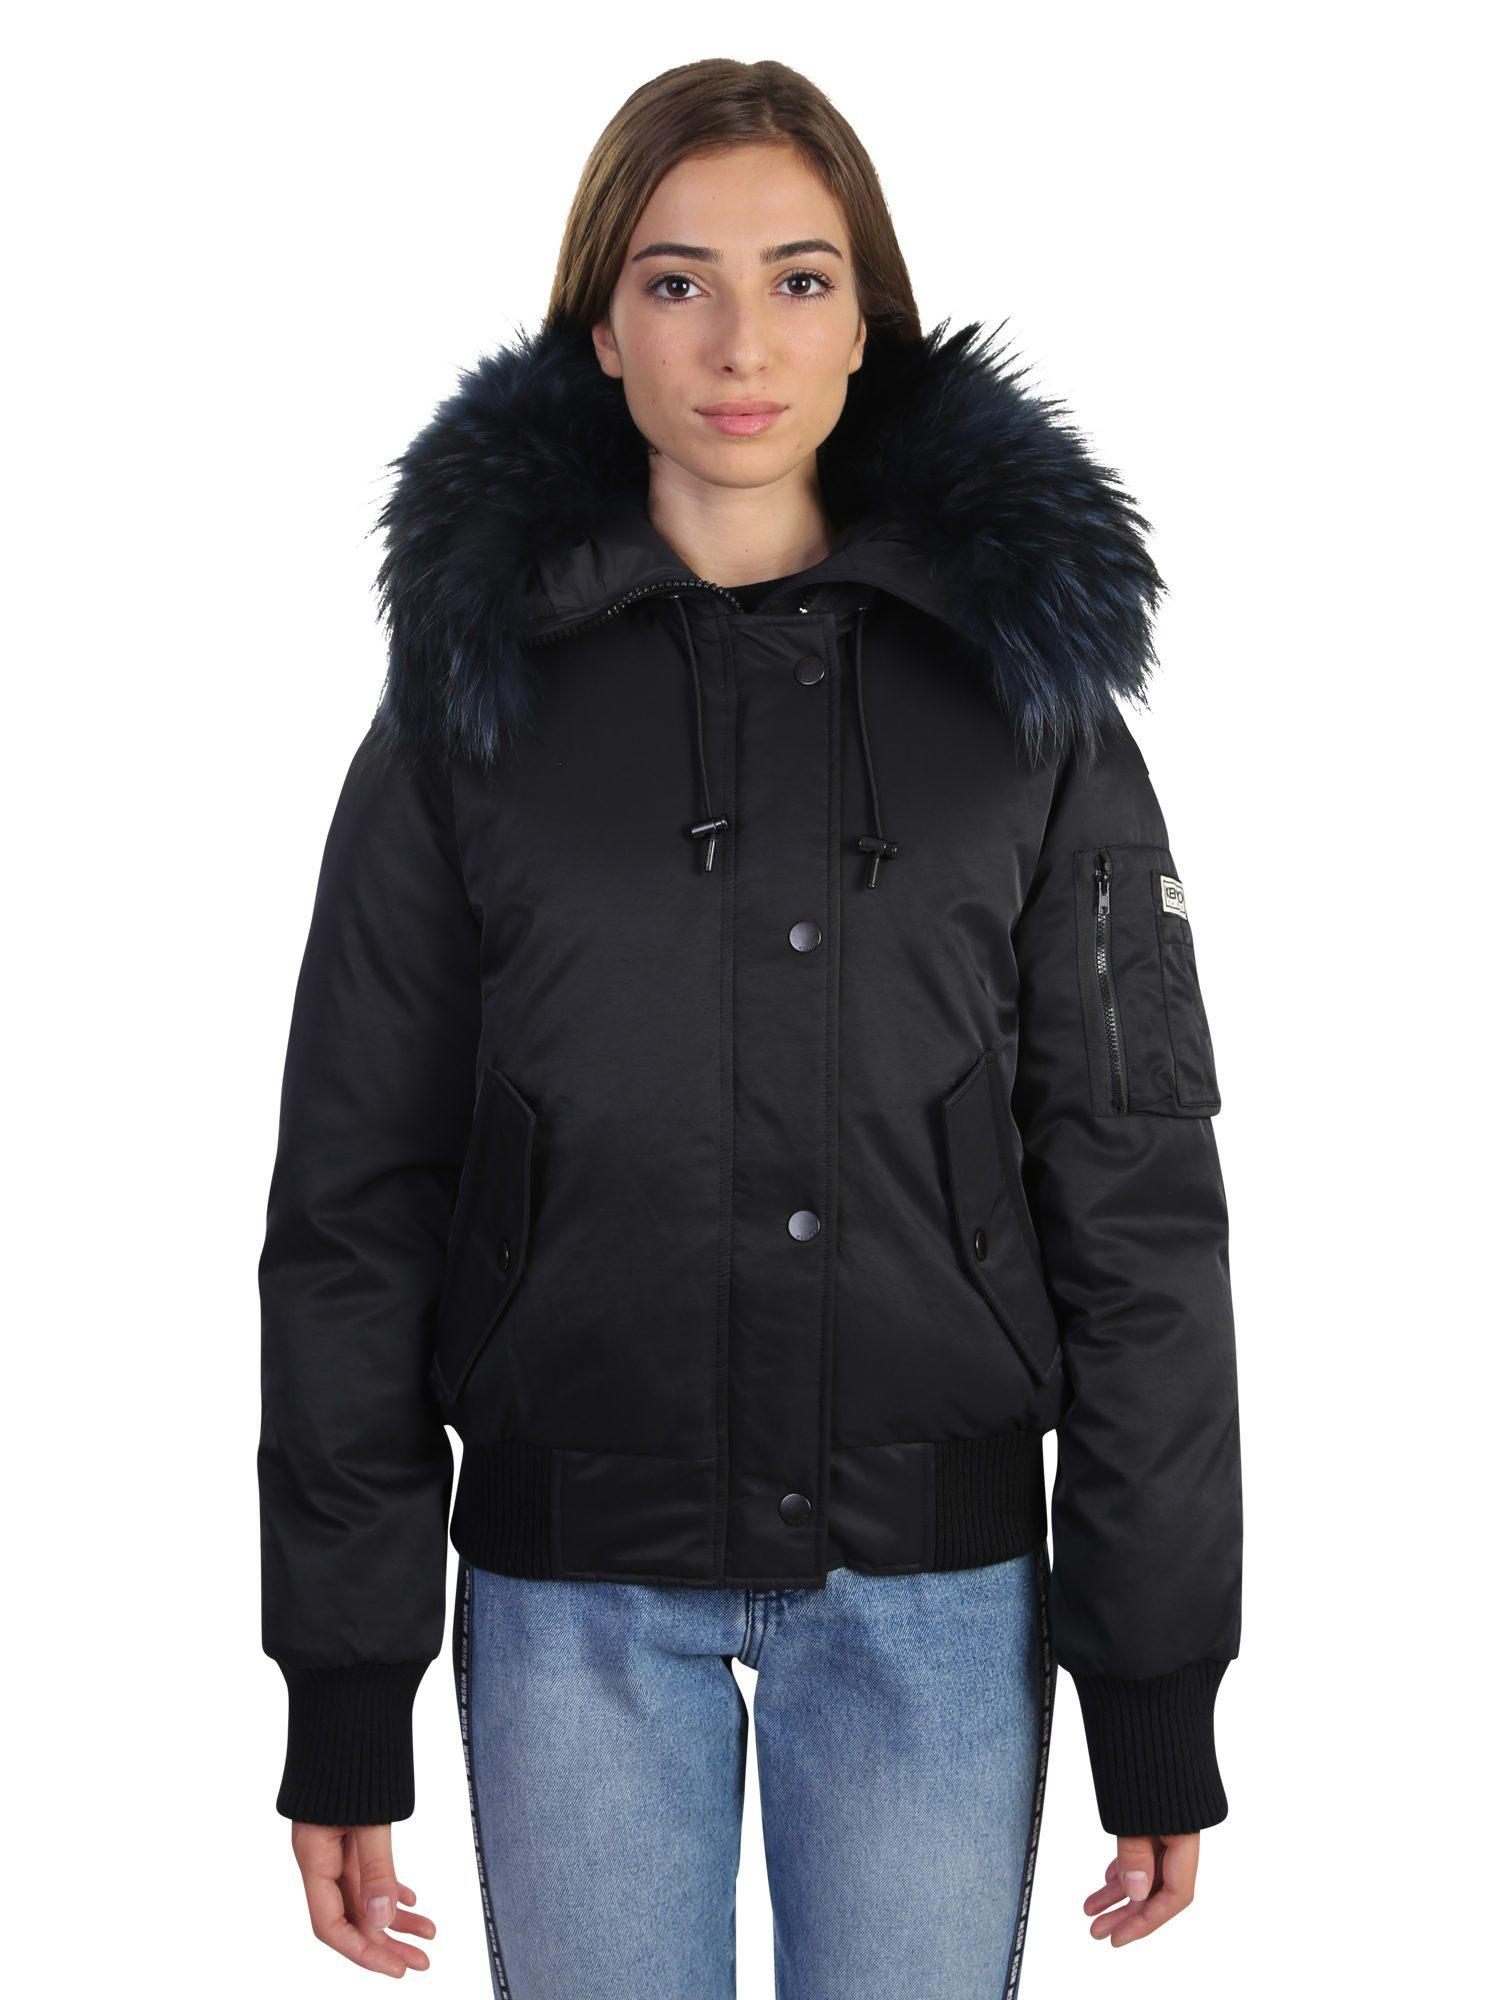 4256e08df4b4 Kenzo Padded Nylon Bomber With Fur in Black - Lyst